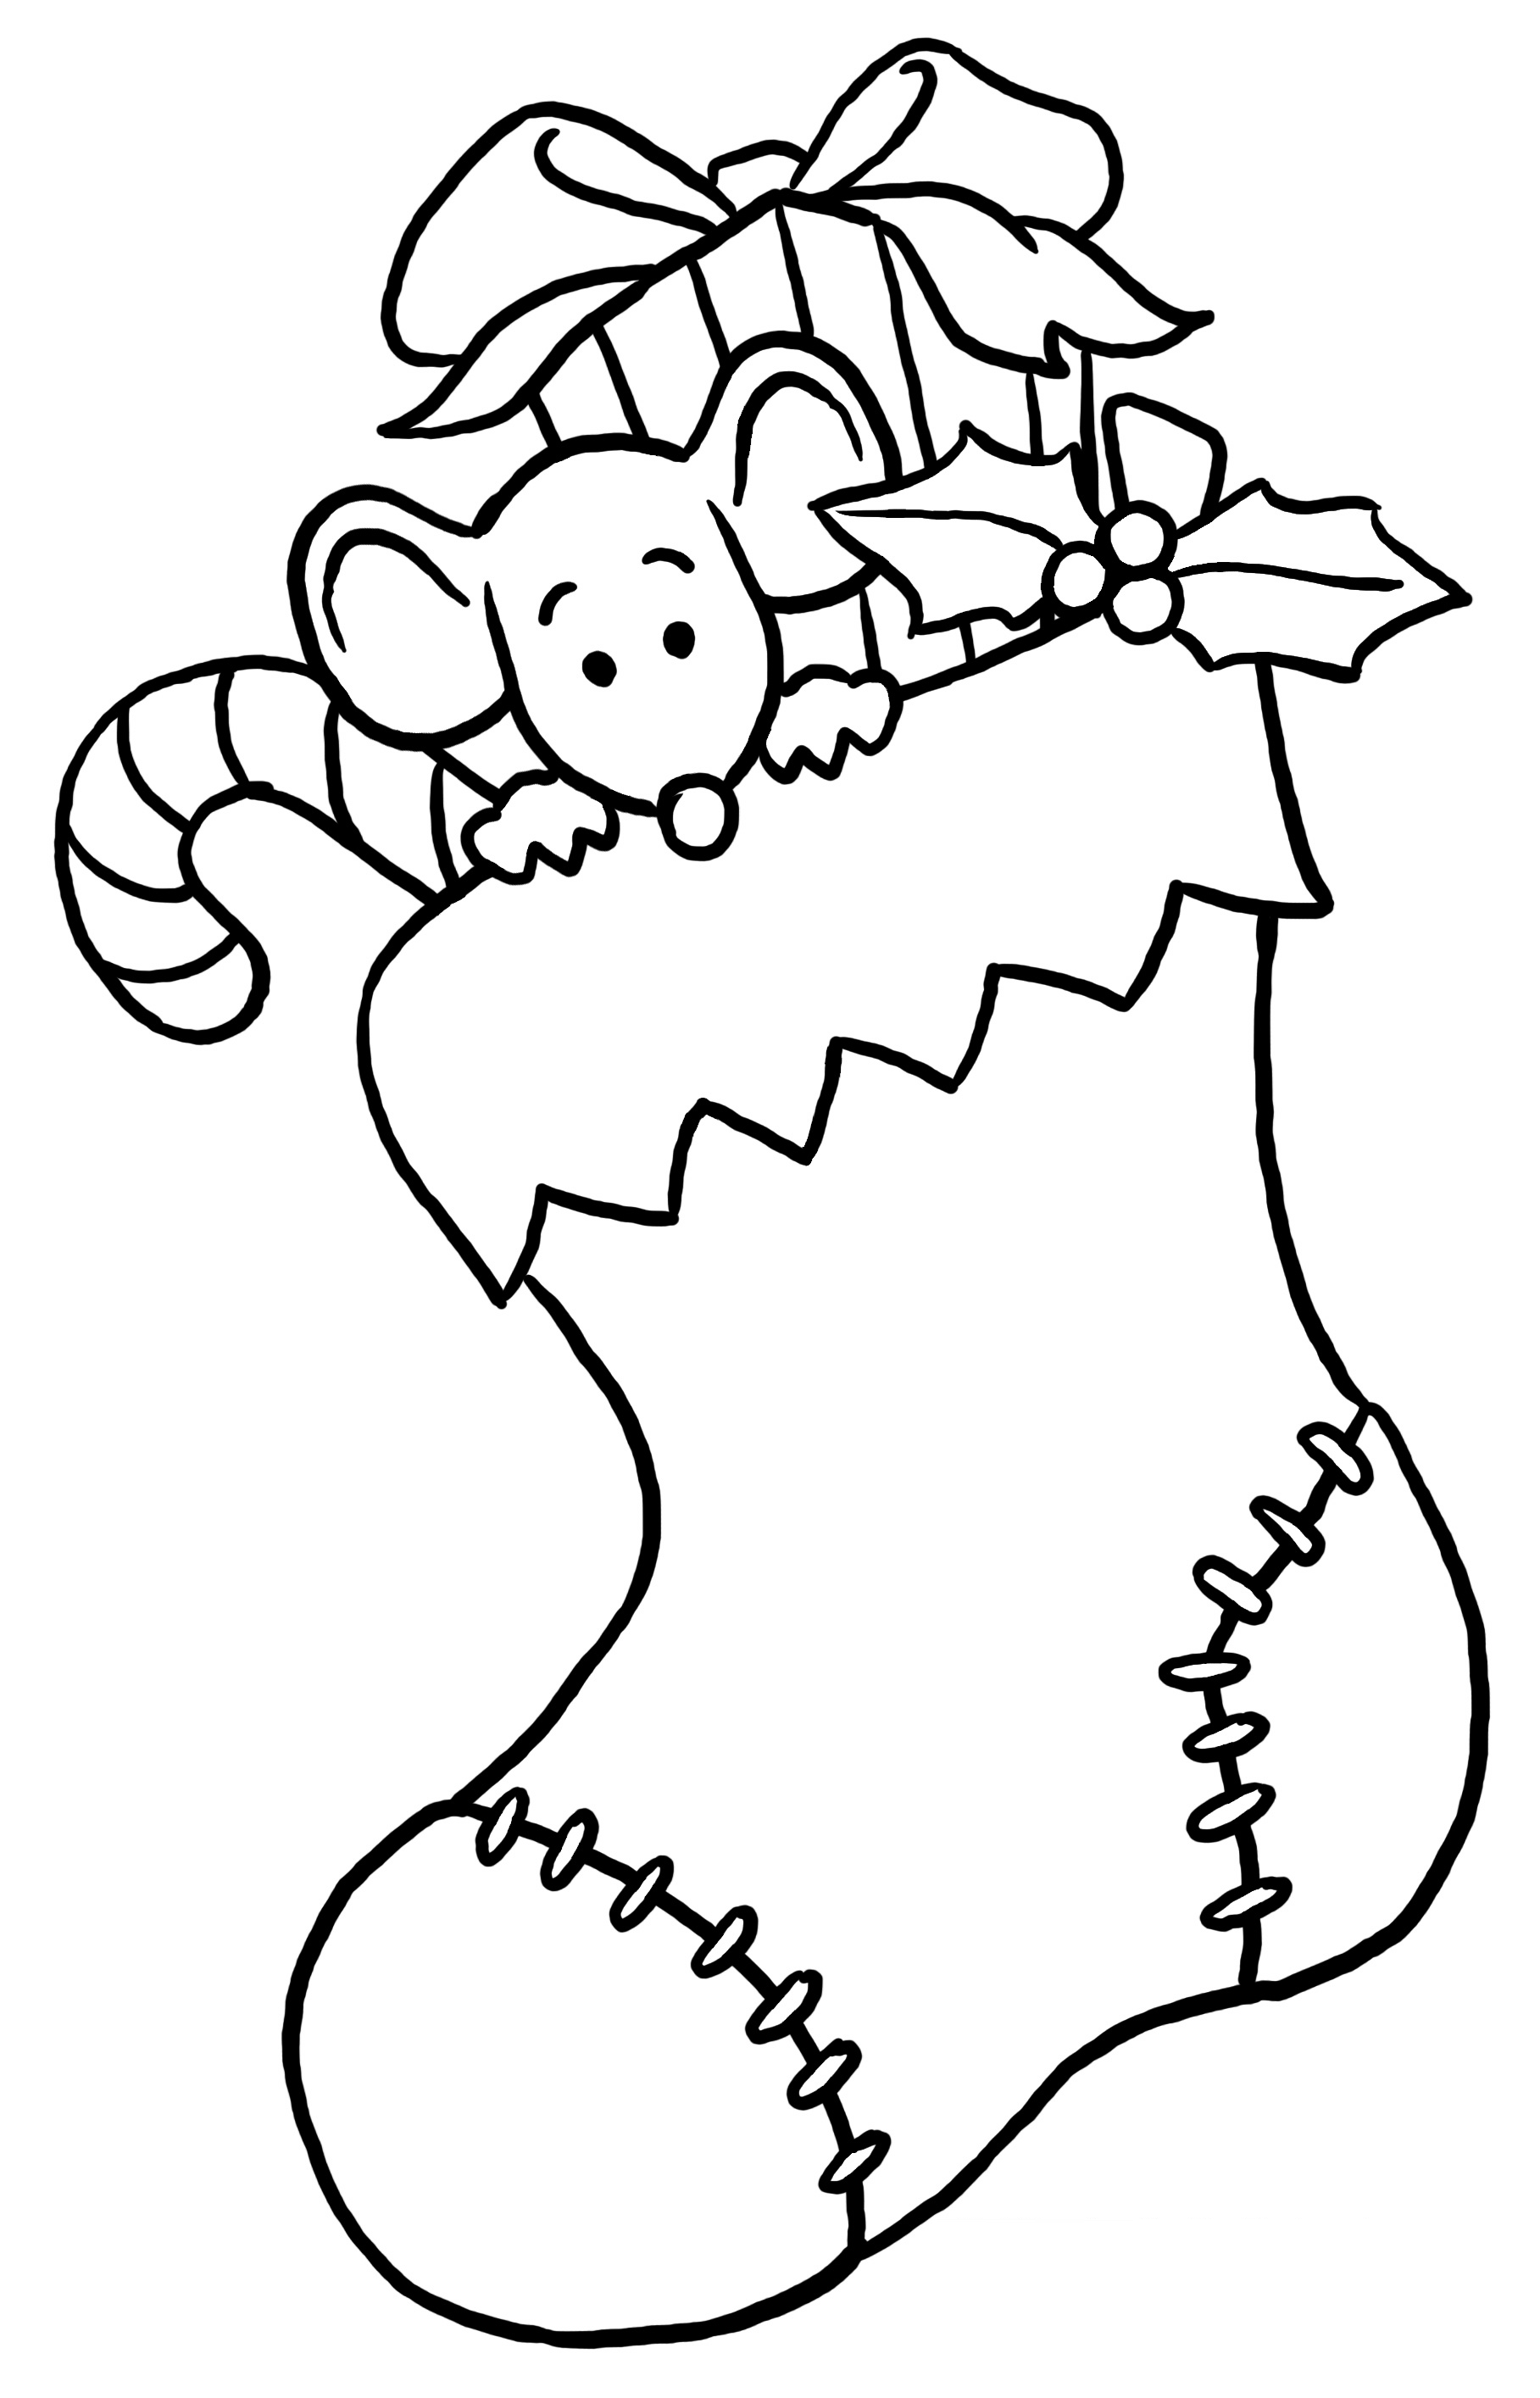 Christmas Coloring Pages (3) - Coloring Kids